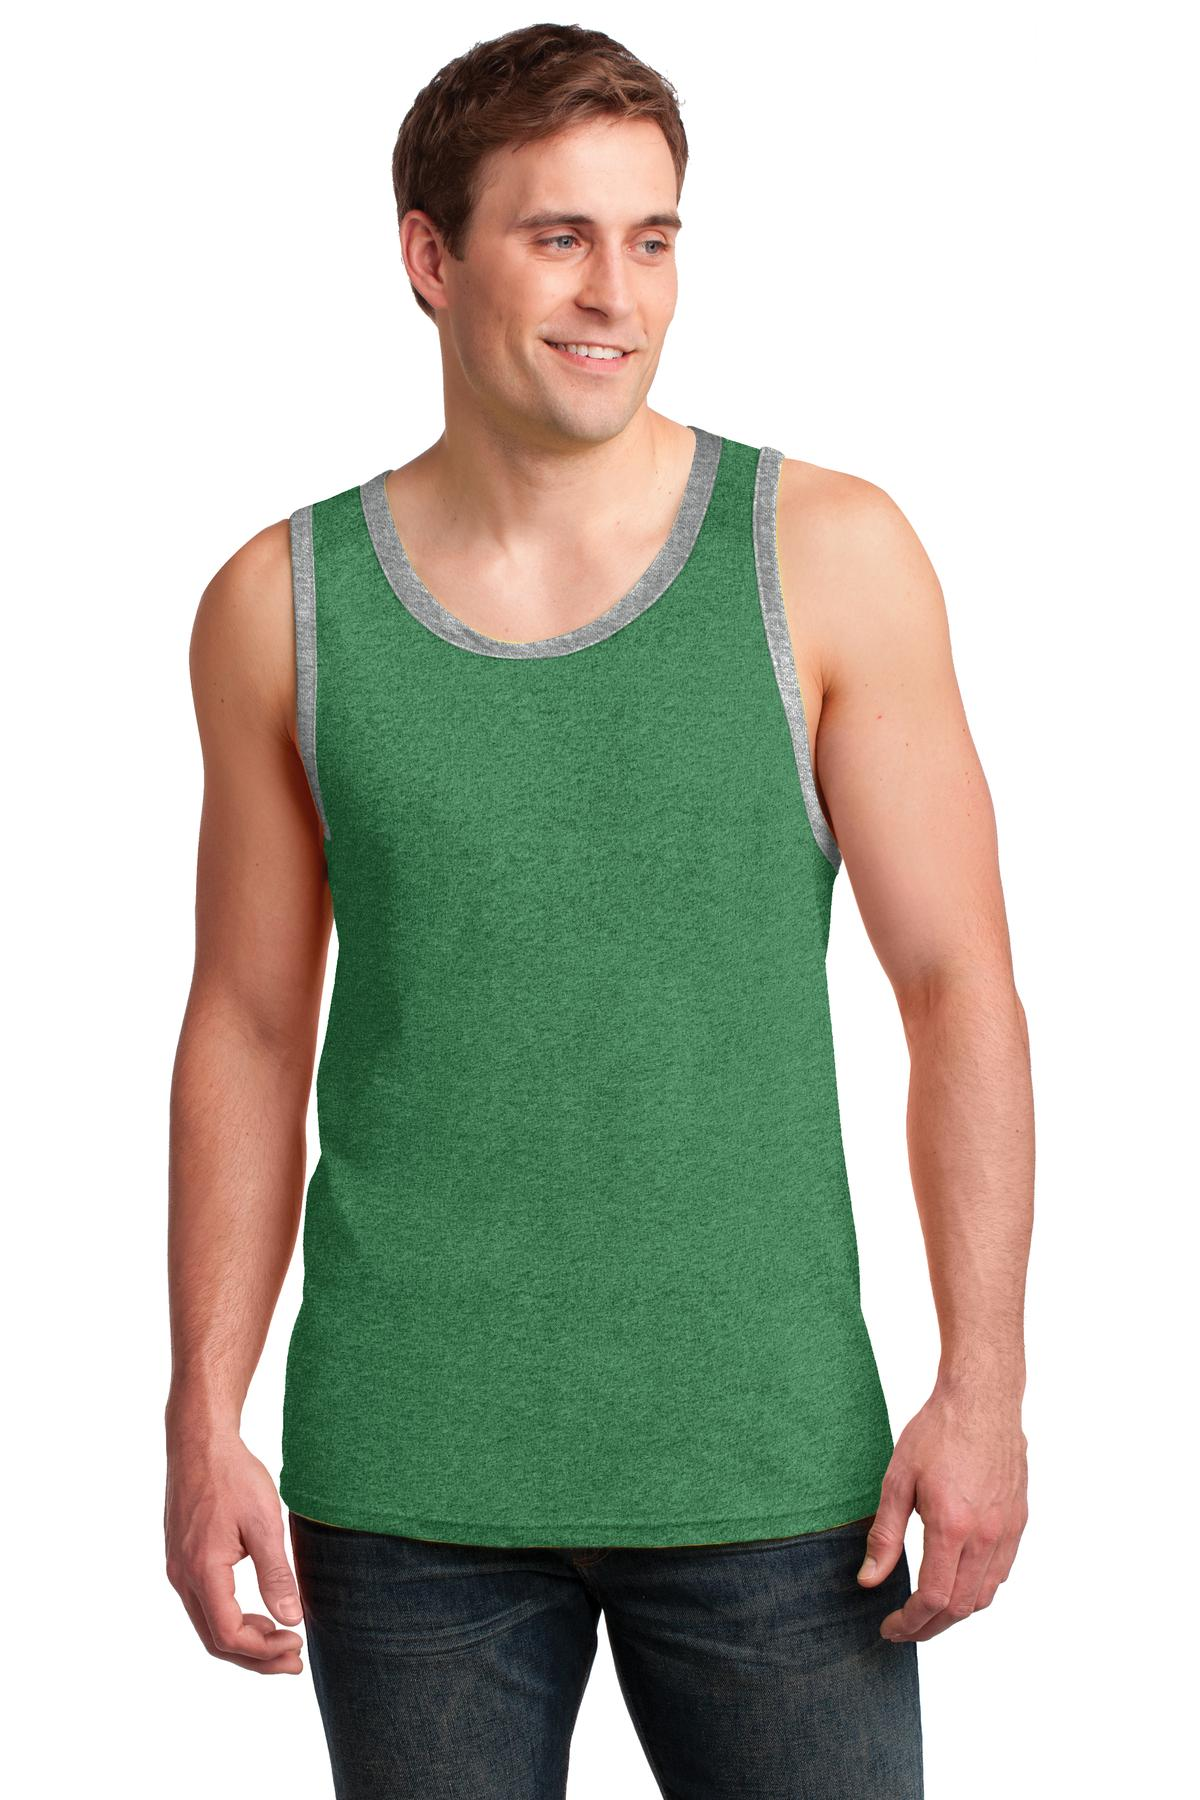 Anvil® 100% Combed Ring Spun Cotton Tank Top. 986 - Aspire Zone